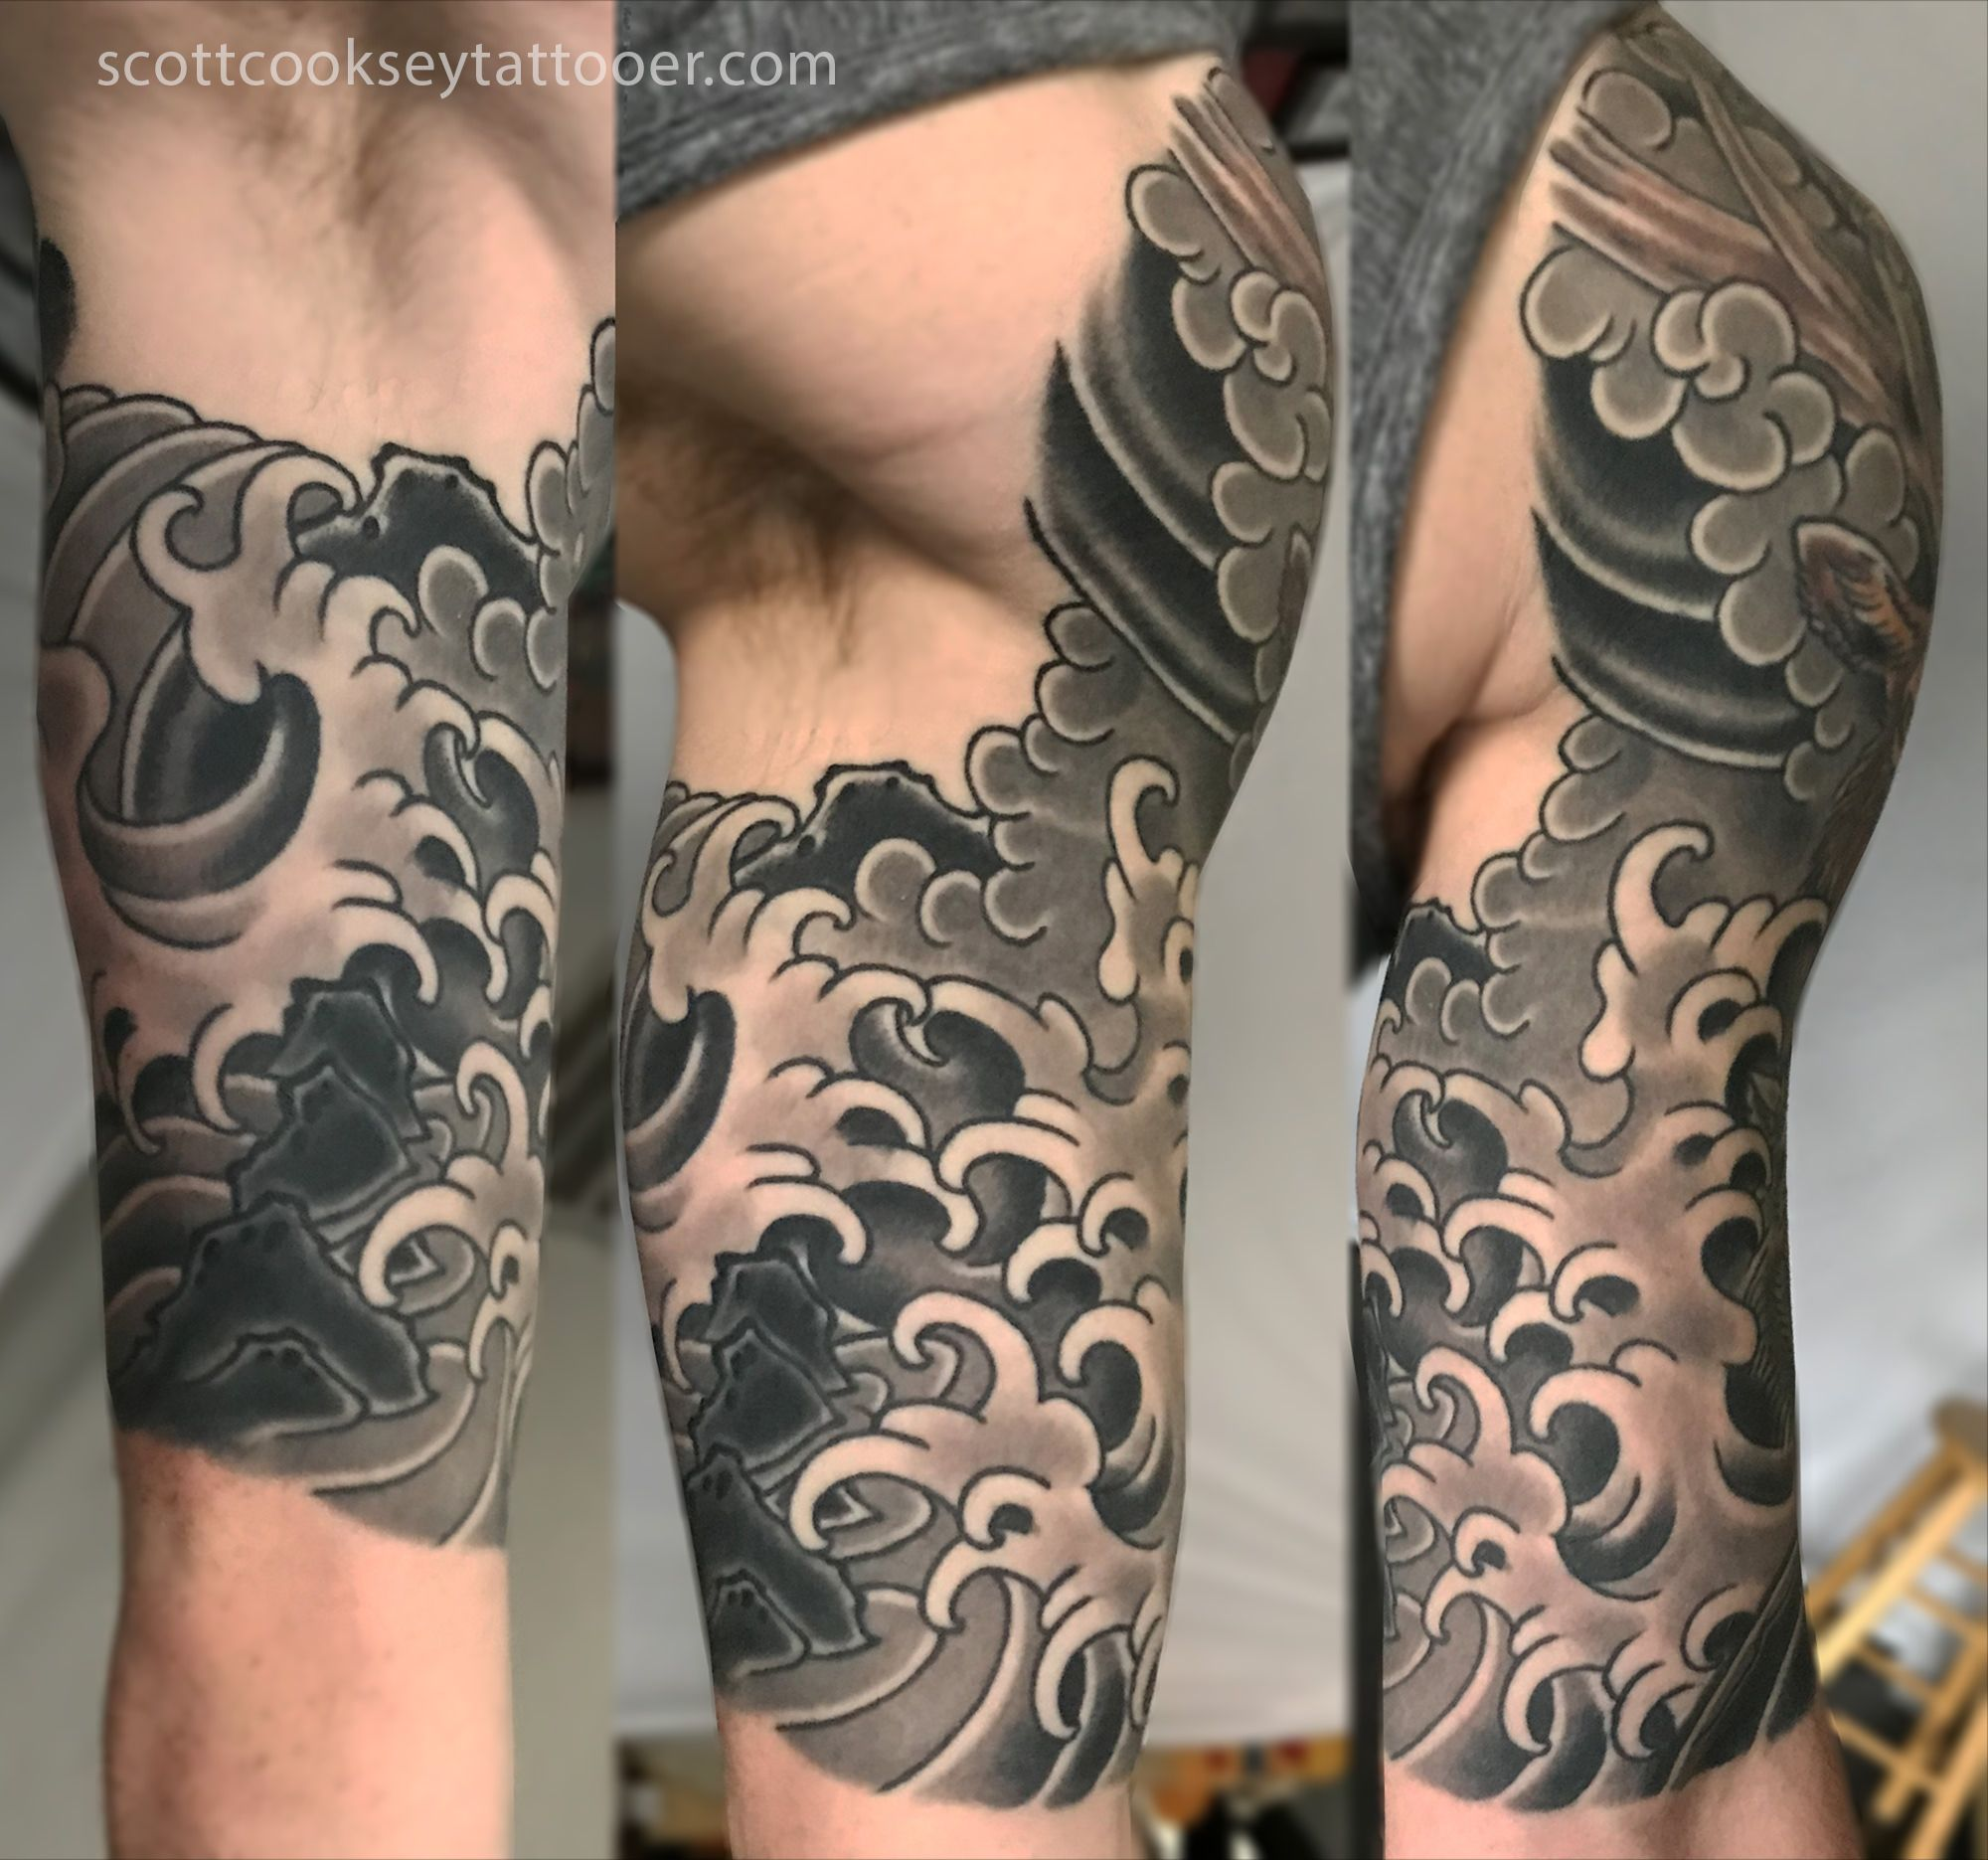 Traditional Japanese Wind Waves Half Sleeve By Scott A Cooksey Of Lone Star Tattoo Dallas And Godspeed Tattoo Breck Wind Tattoo Wave Tattoo Sleeve Star Tattoos